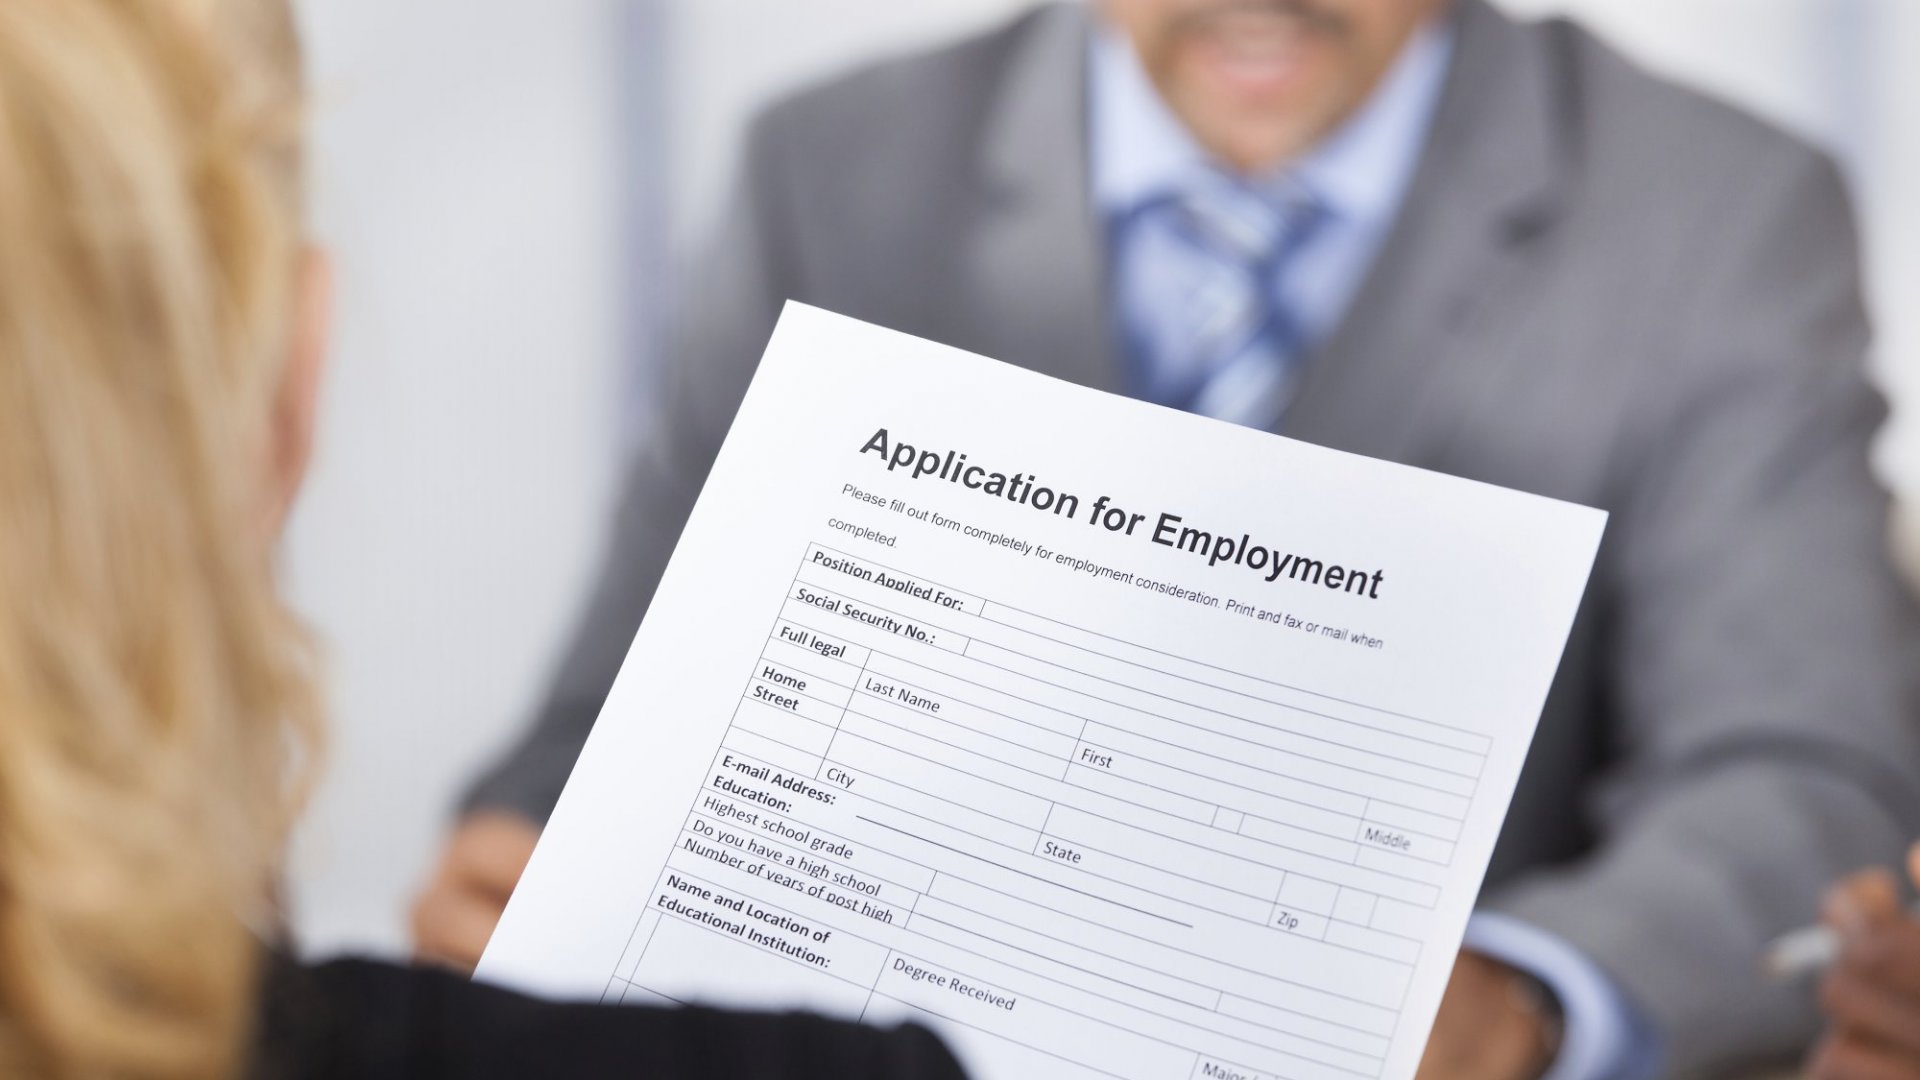 The 8 Words You Should Never Use On Your Resume (And The Ones You Should)